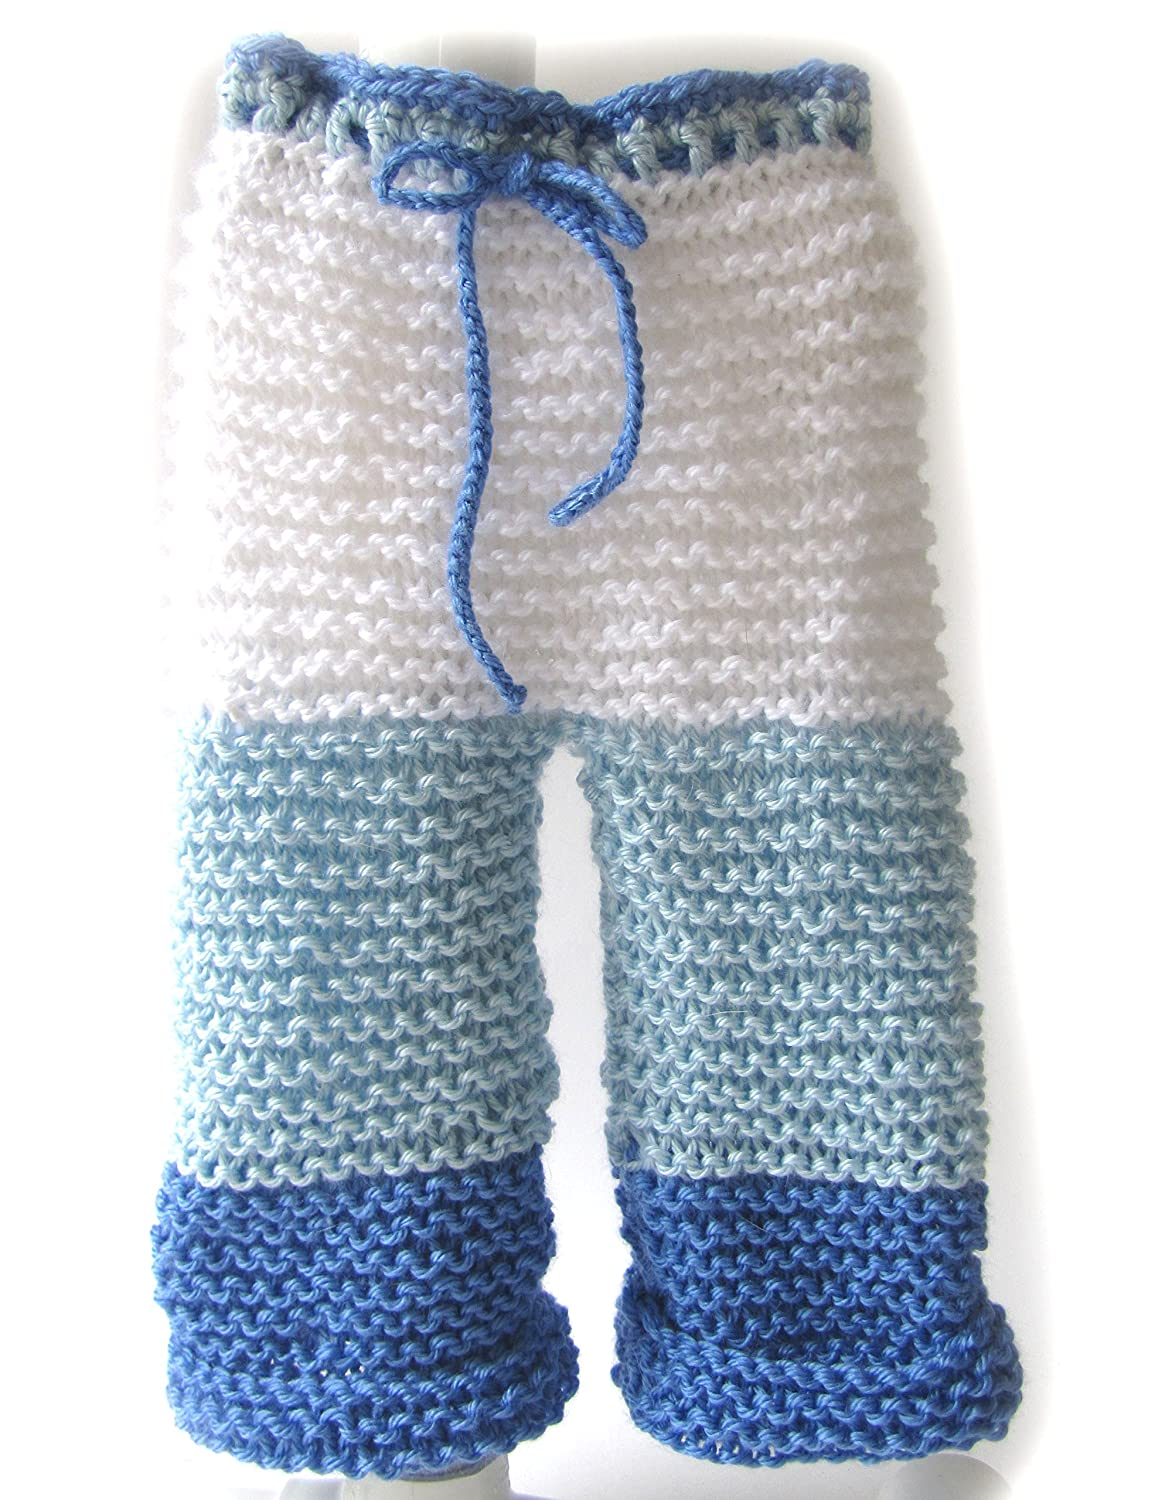 KSS Handmade Knitted Ombre Pants 6 Months